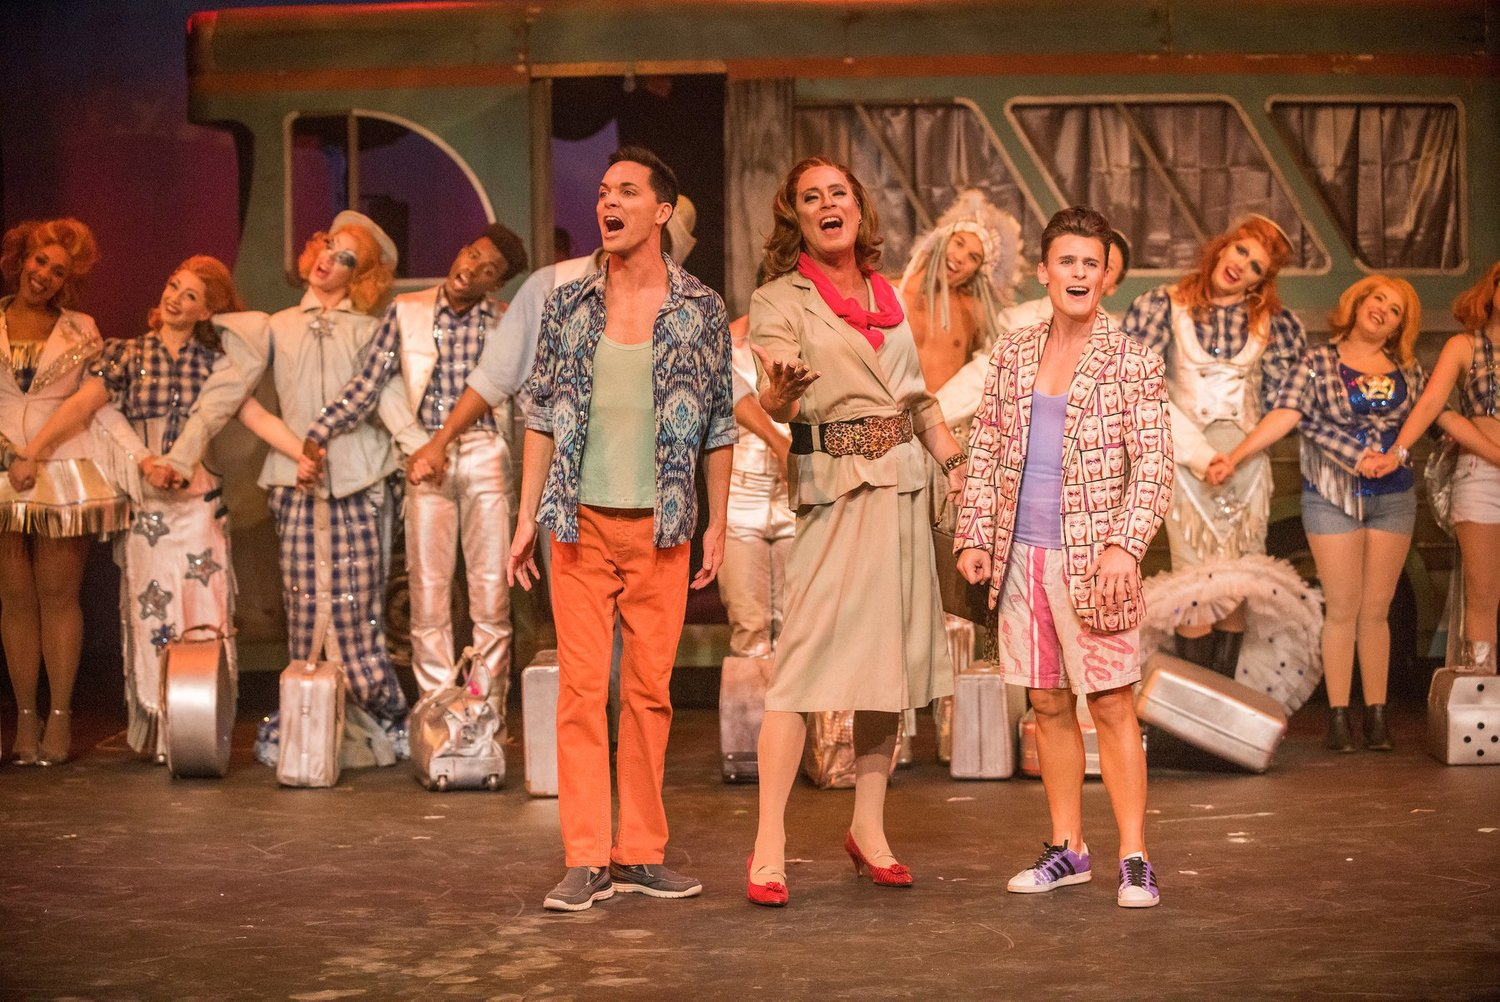 BWW Review: PRISCILLA QUEEN OF THE DESERT at Uptown Players